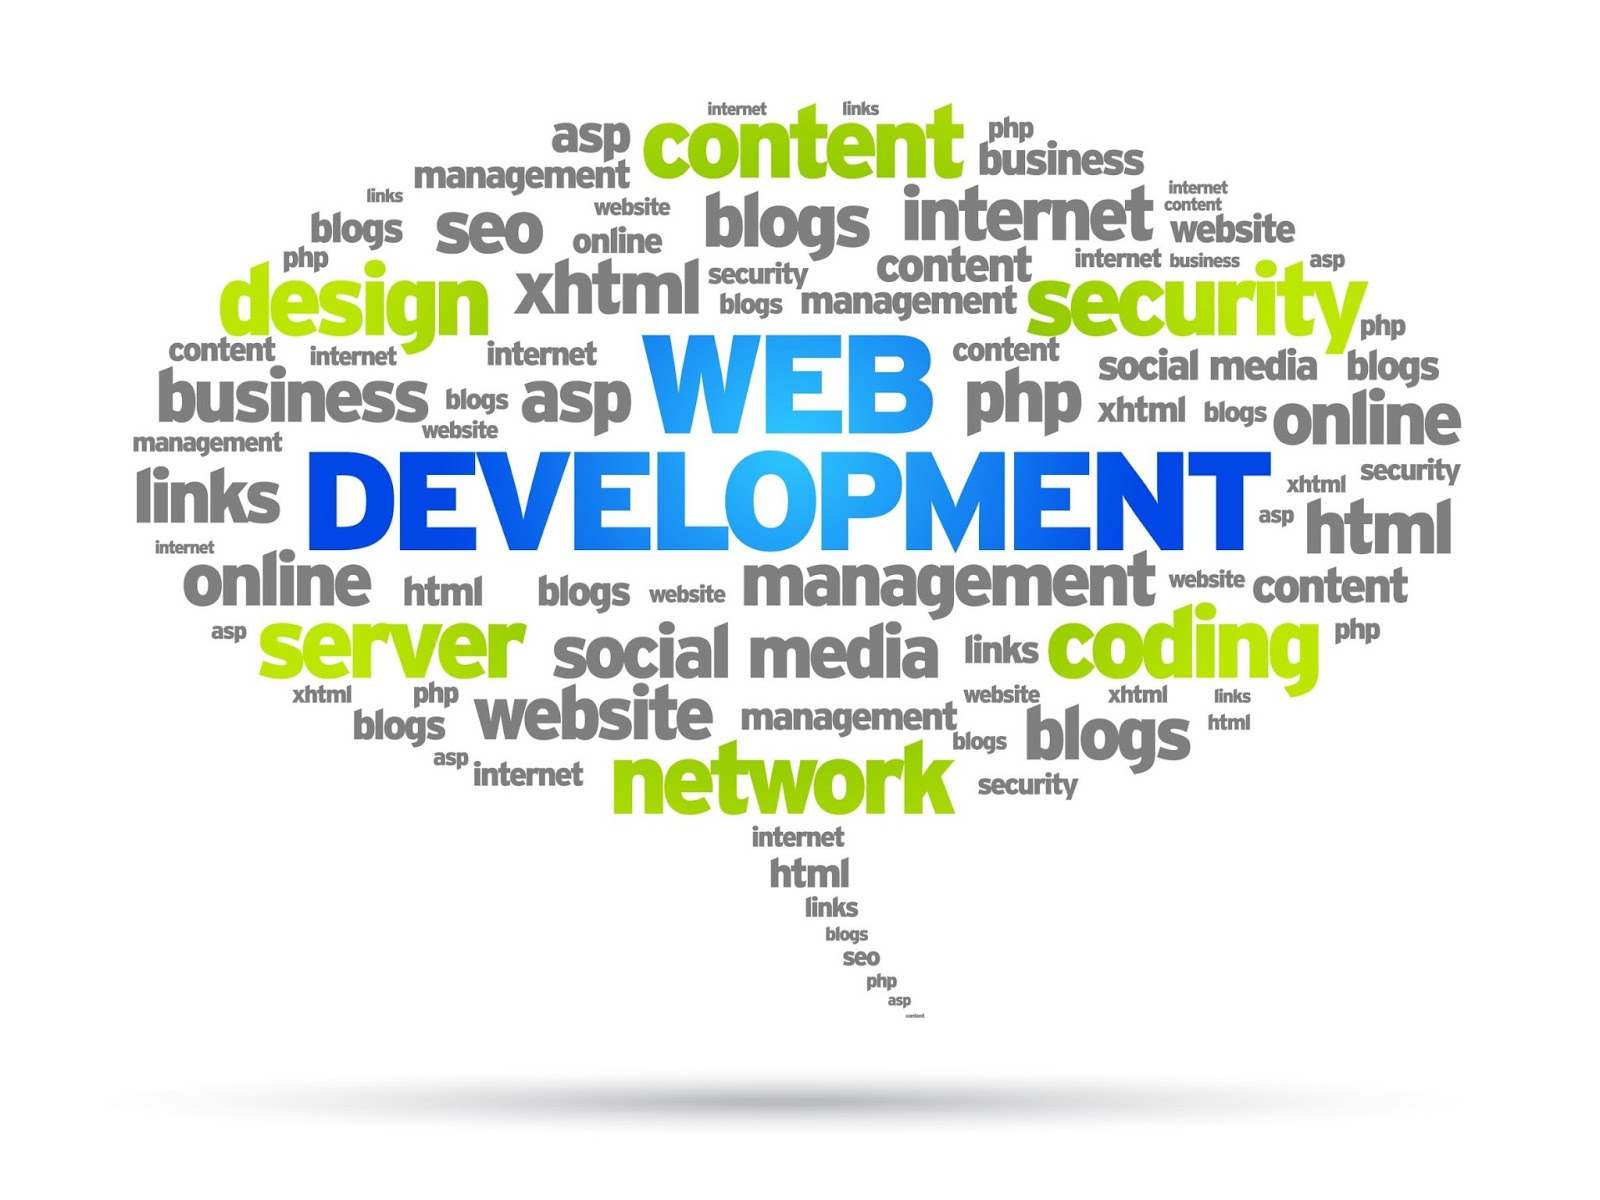 RMG-Web-Development-004